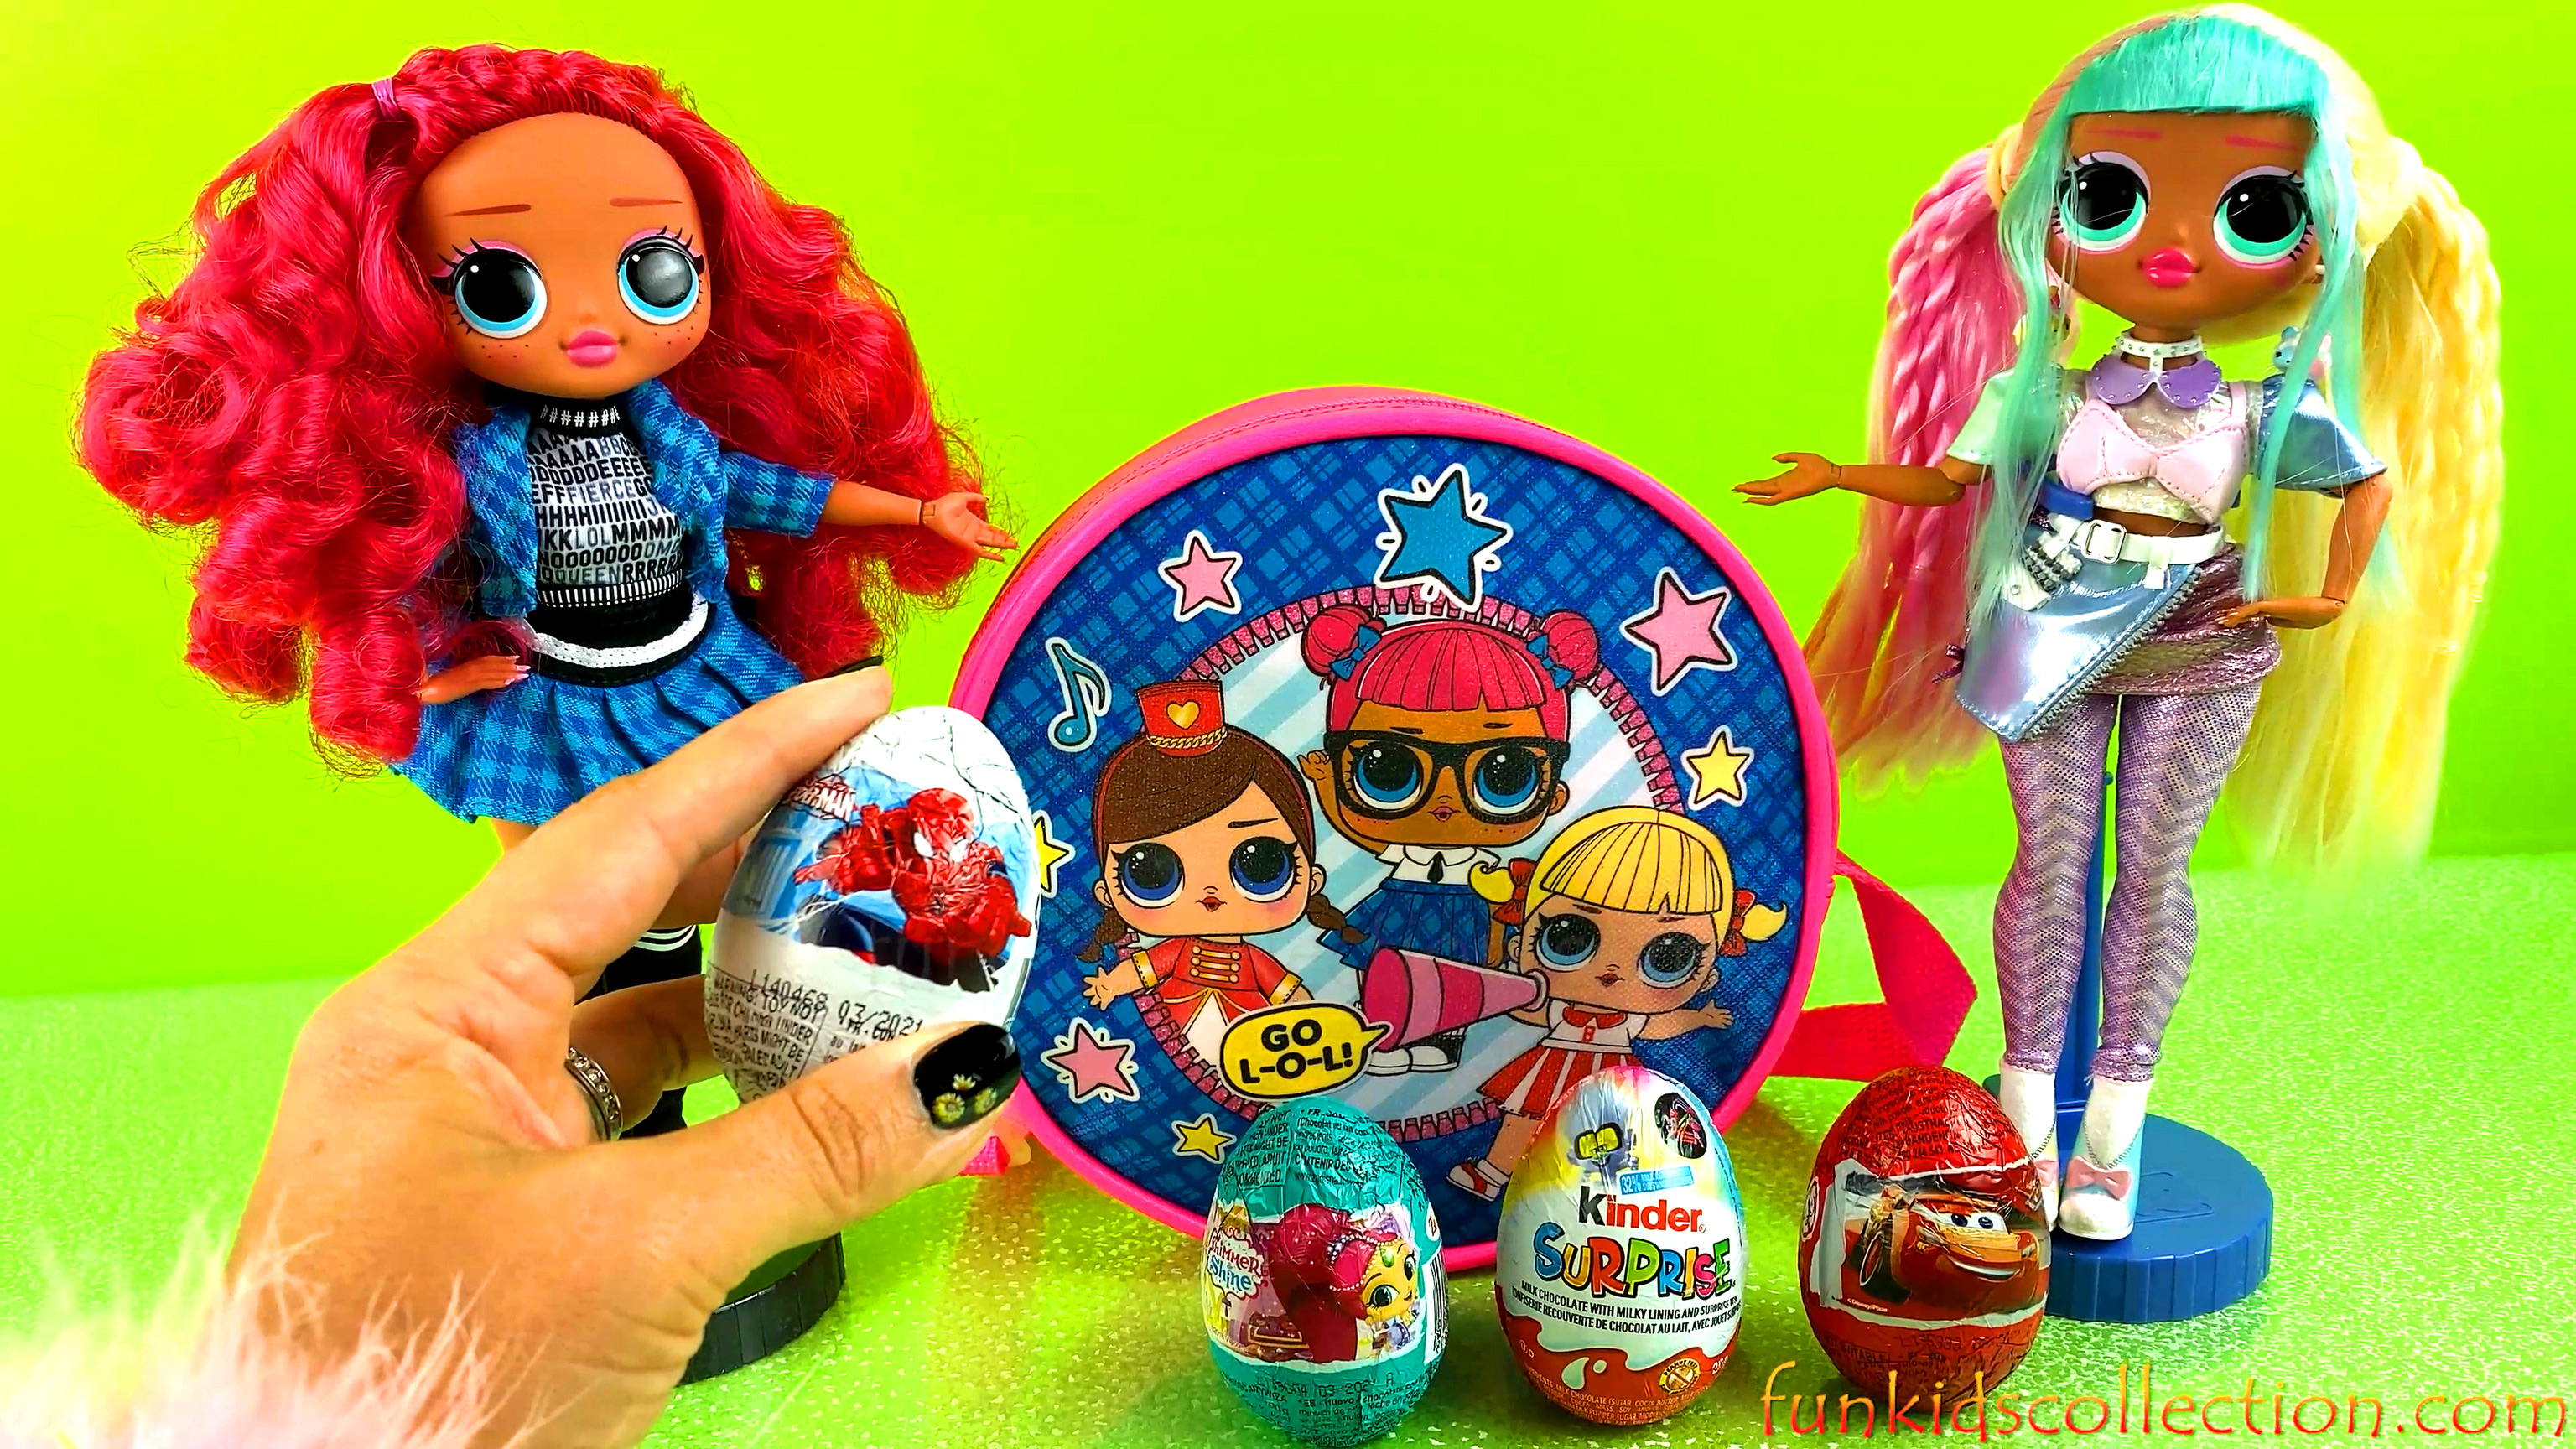 Opening Egg Surprises | Lol Surprise Dolls Present Kinder Egg & Zaini Egg Surprises